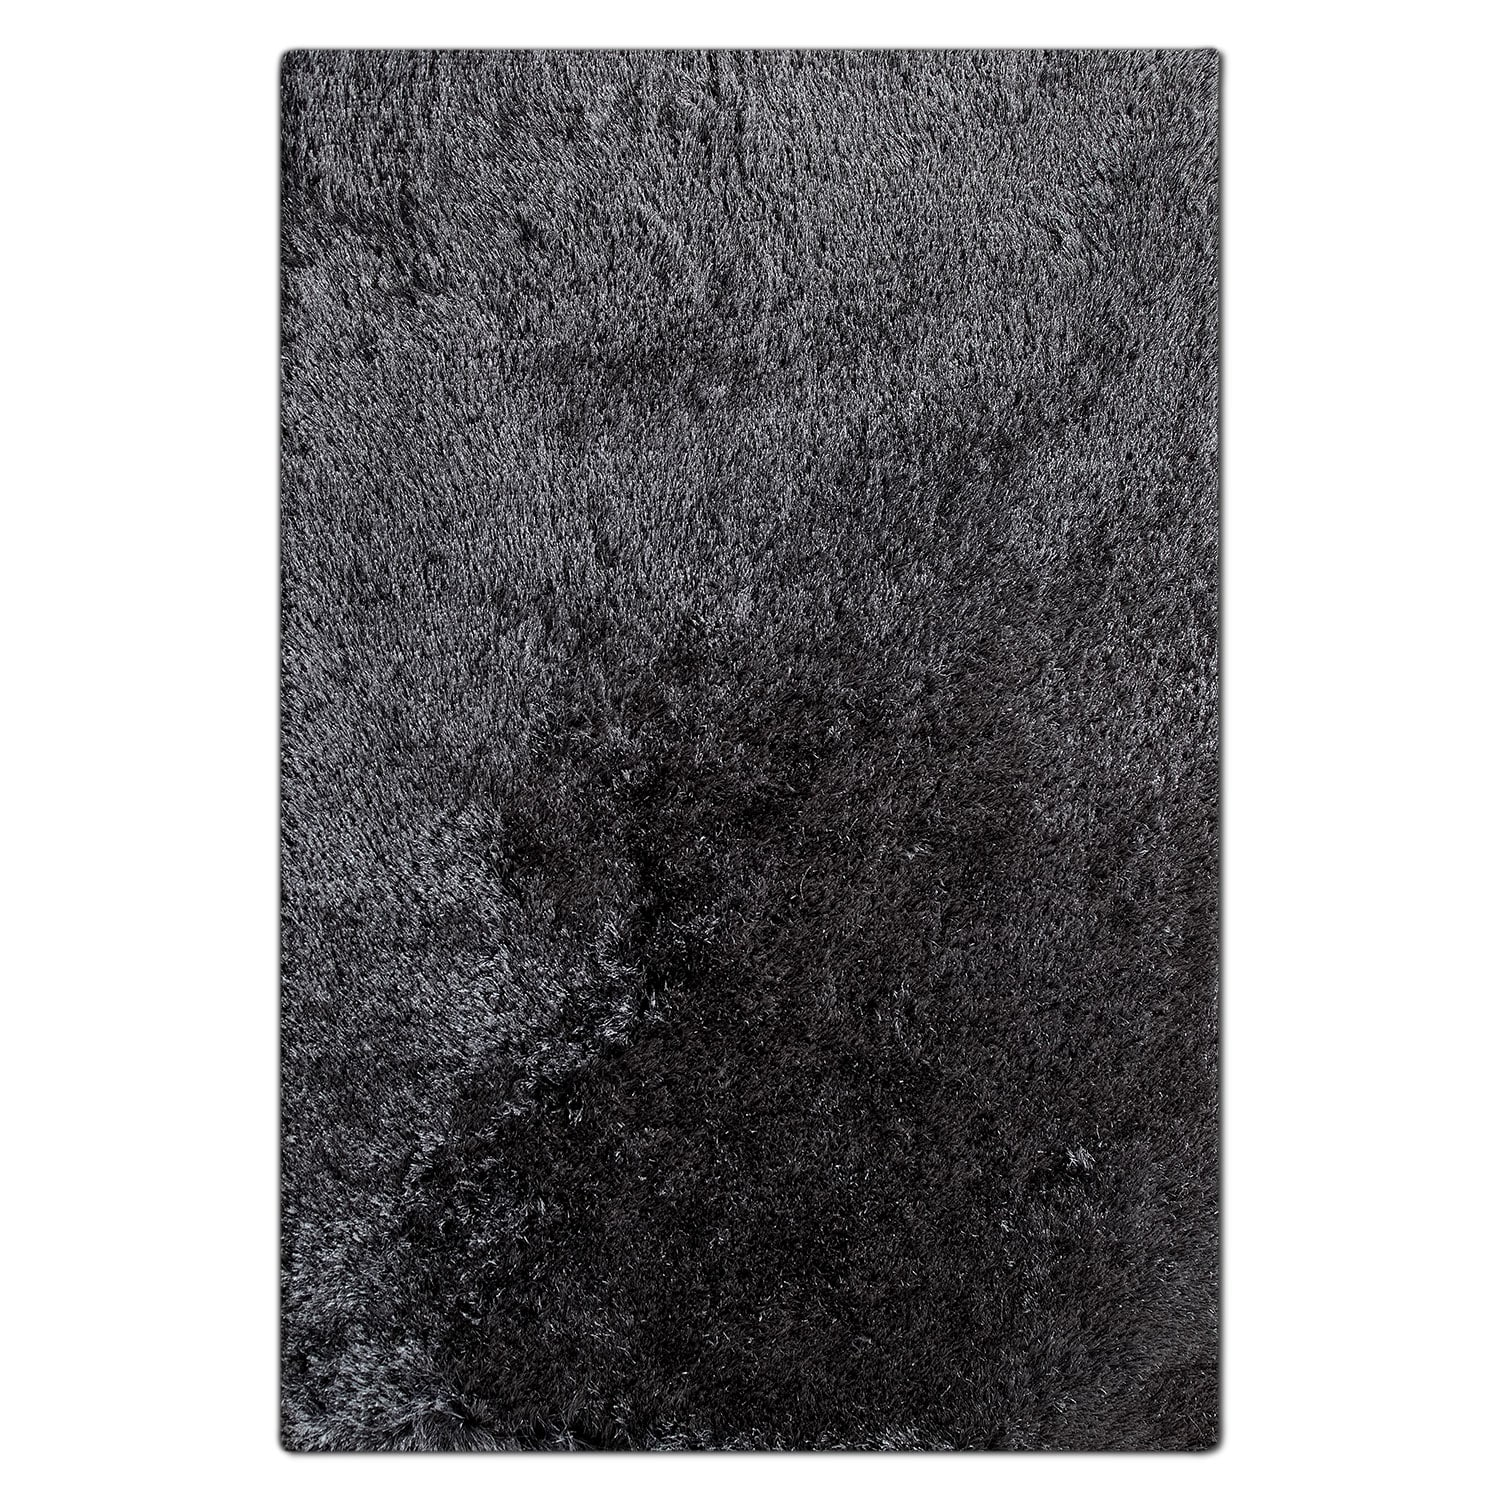 Luxe 5' x 8' Area Rug - Charcoal